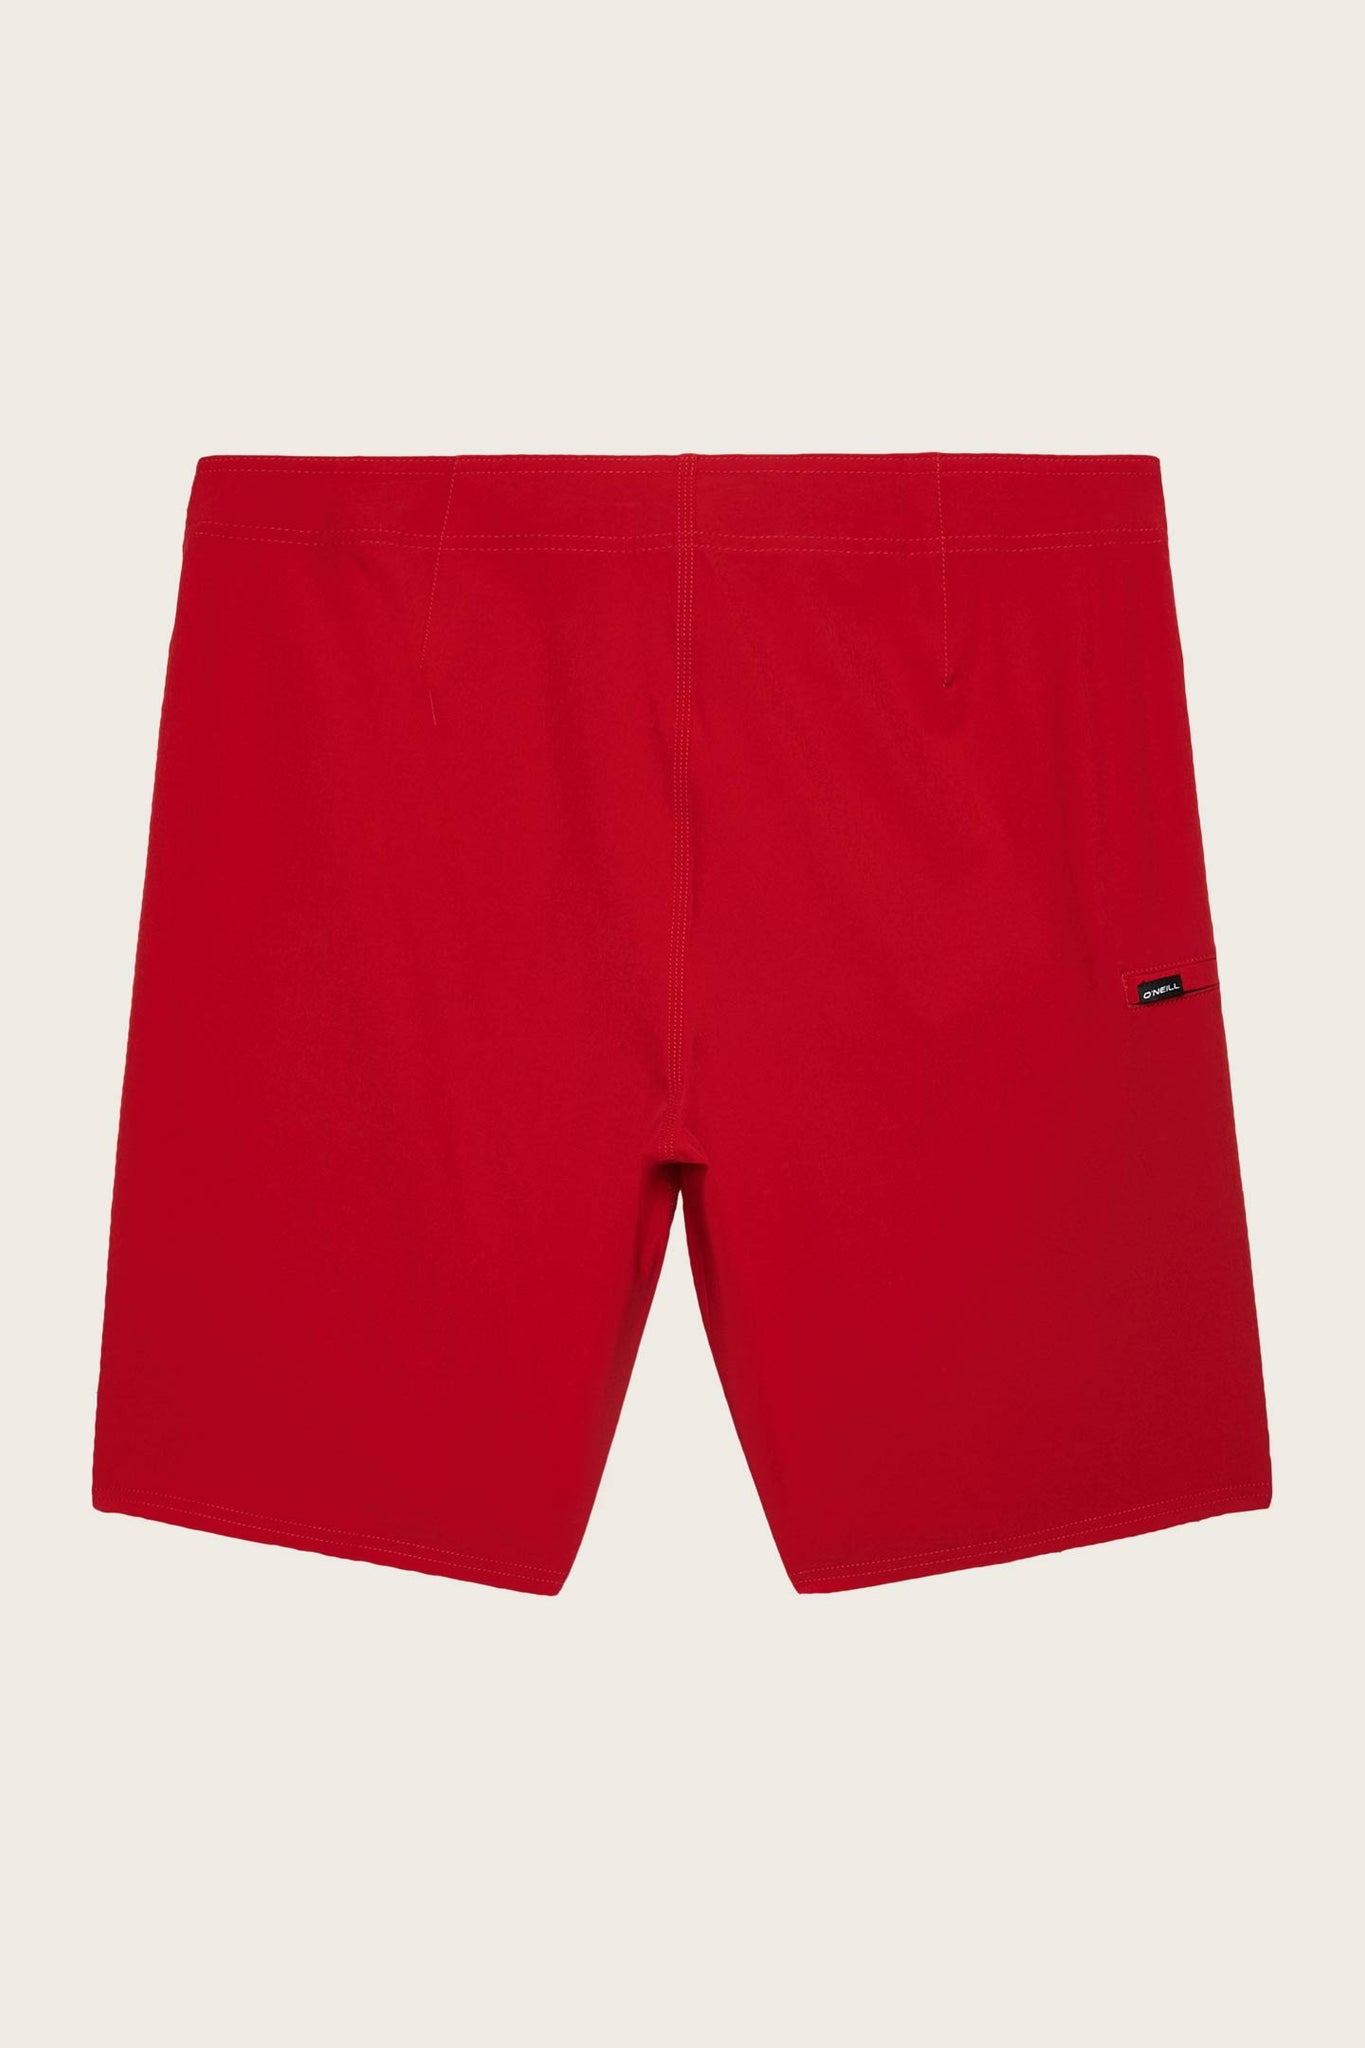 Boys Hyperfreak Lifeguard Boardshorts - Lifeguard Red | O'Neill